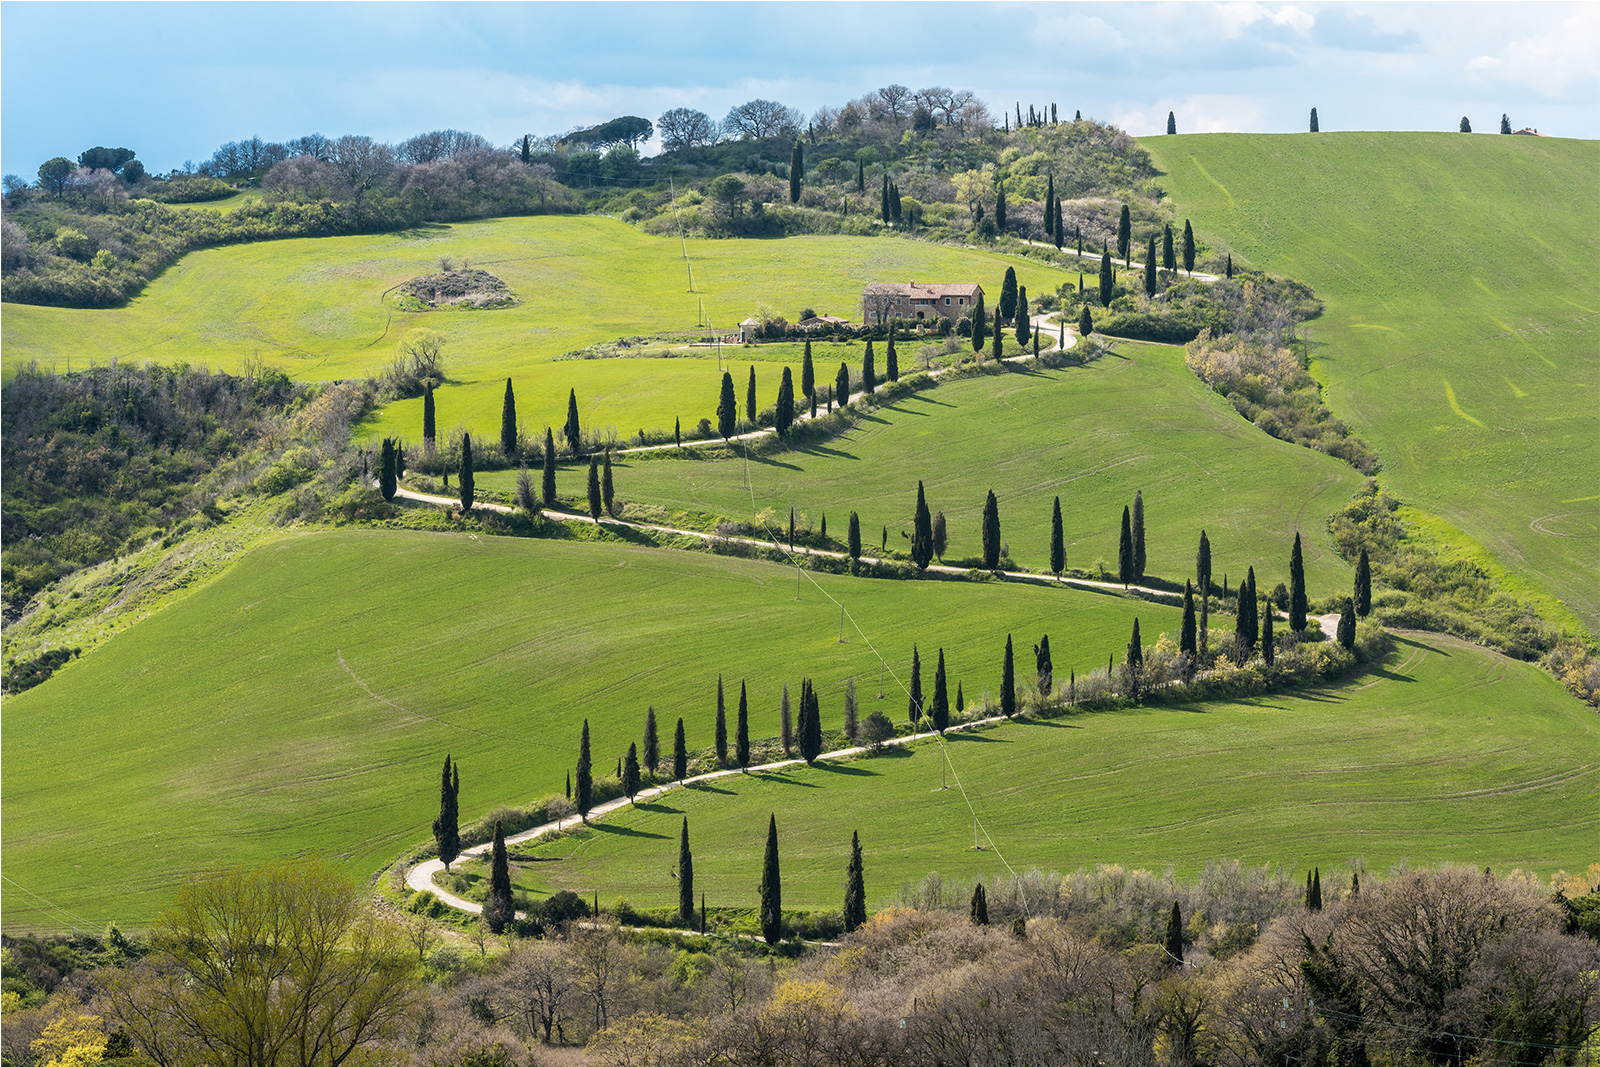 Tuscany land of the Renaissance beauty and relax 7-day